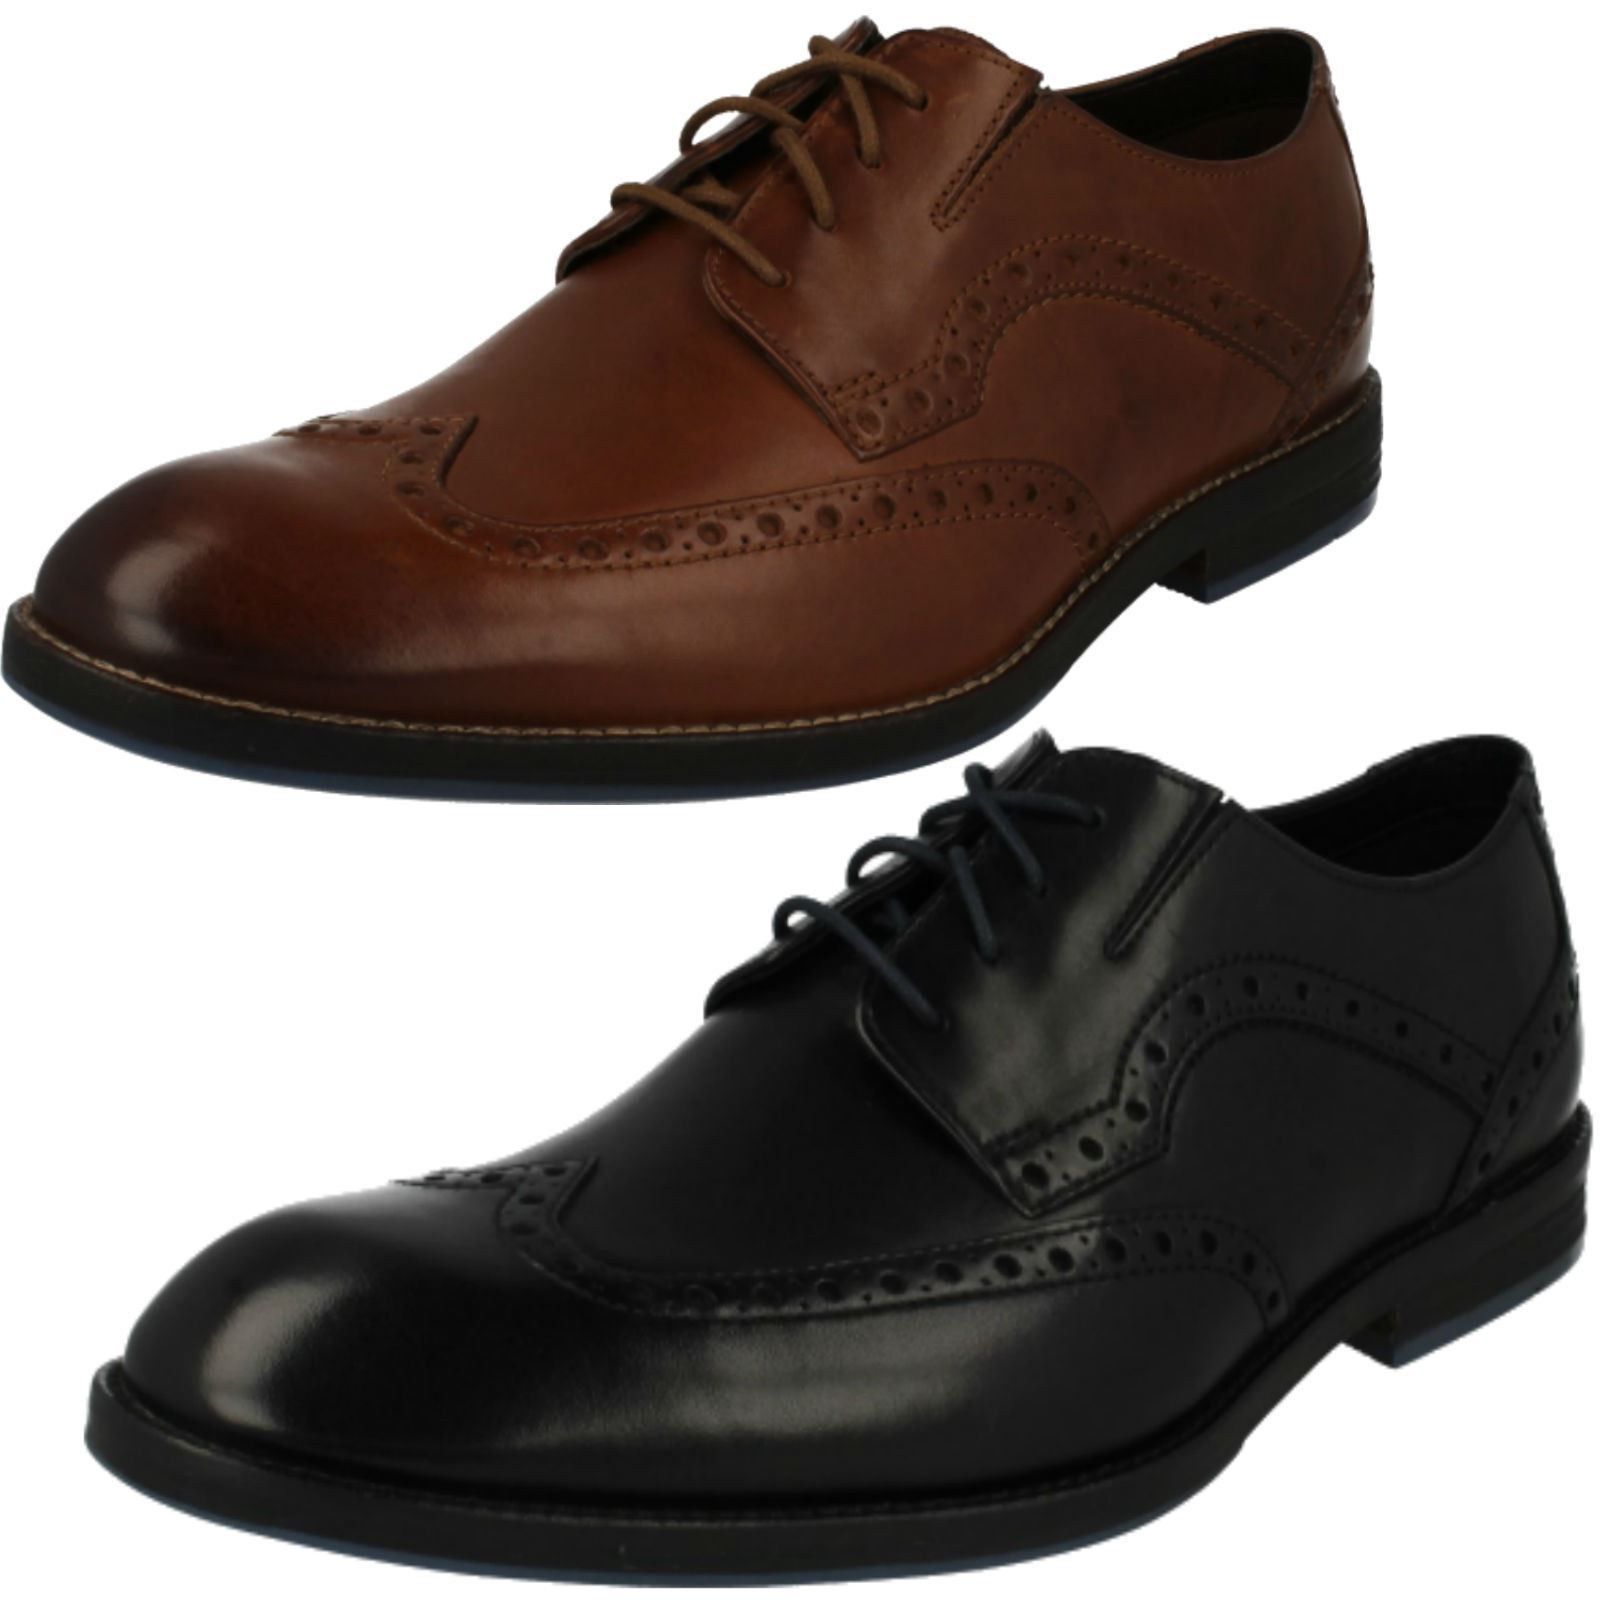 Clarks Mens Formal Brogues Prangley Limit